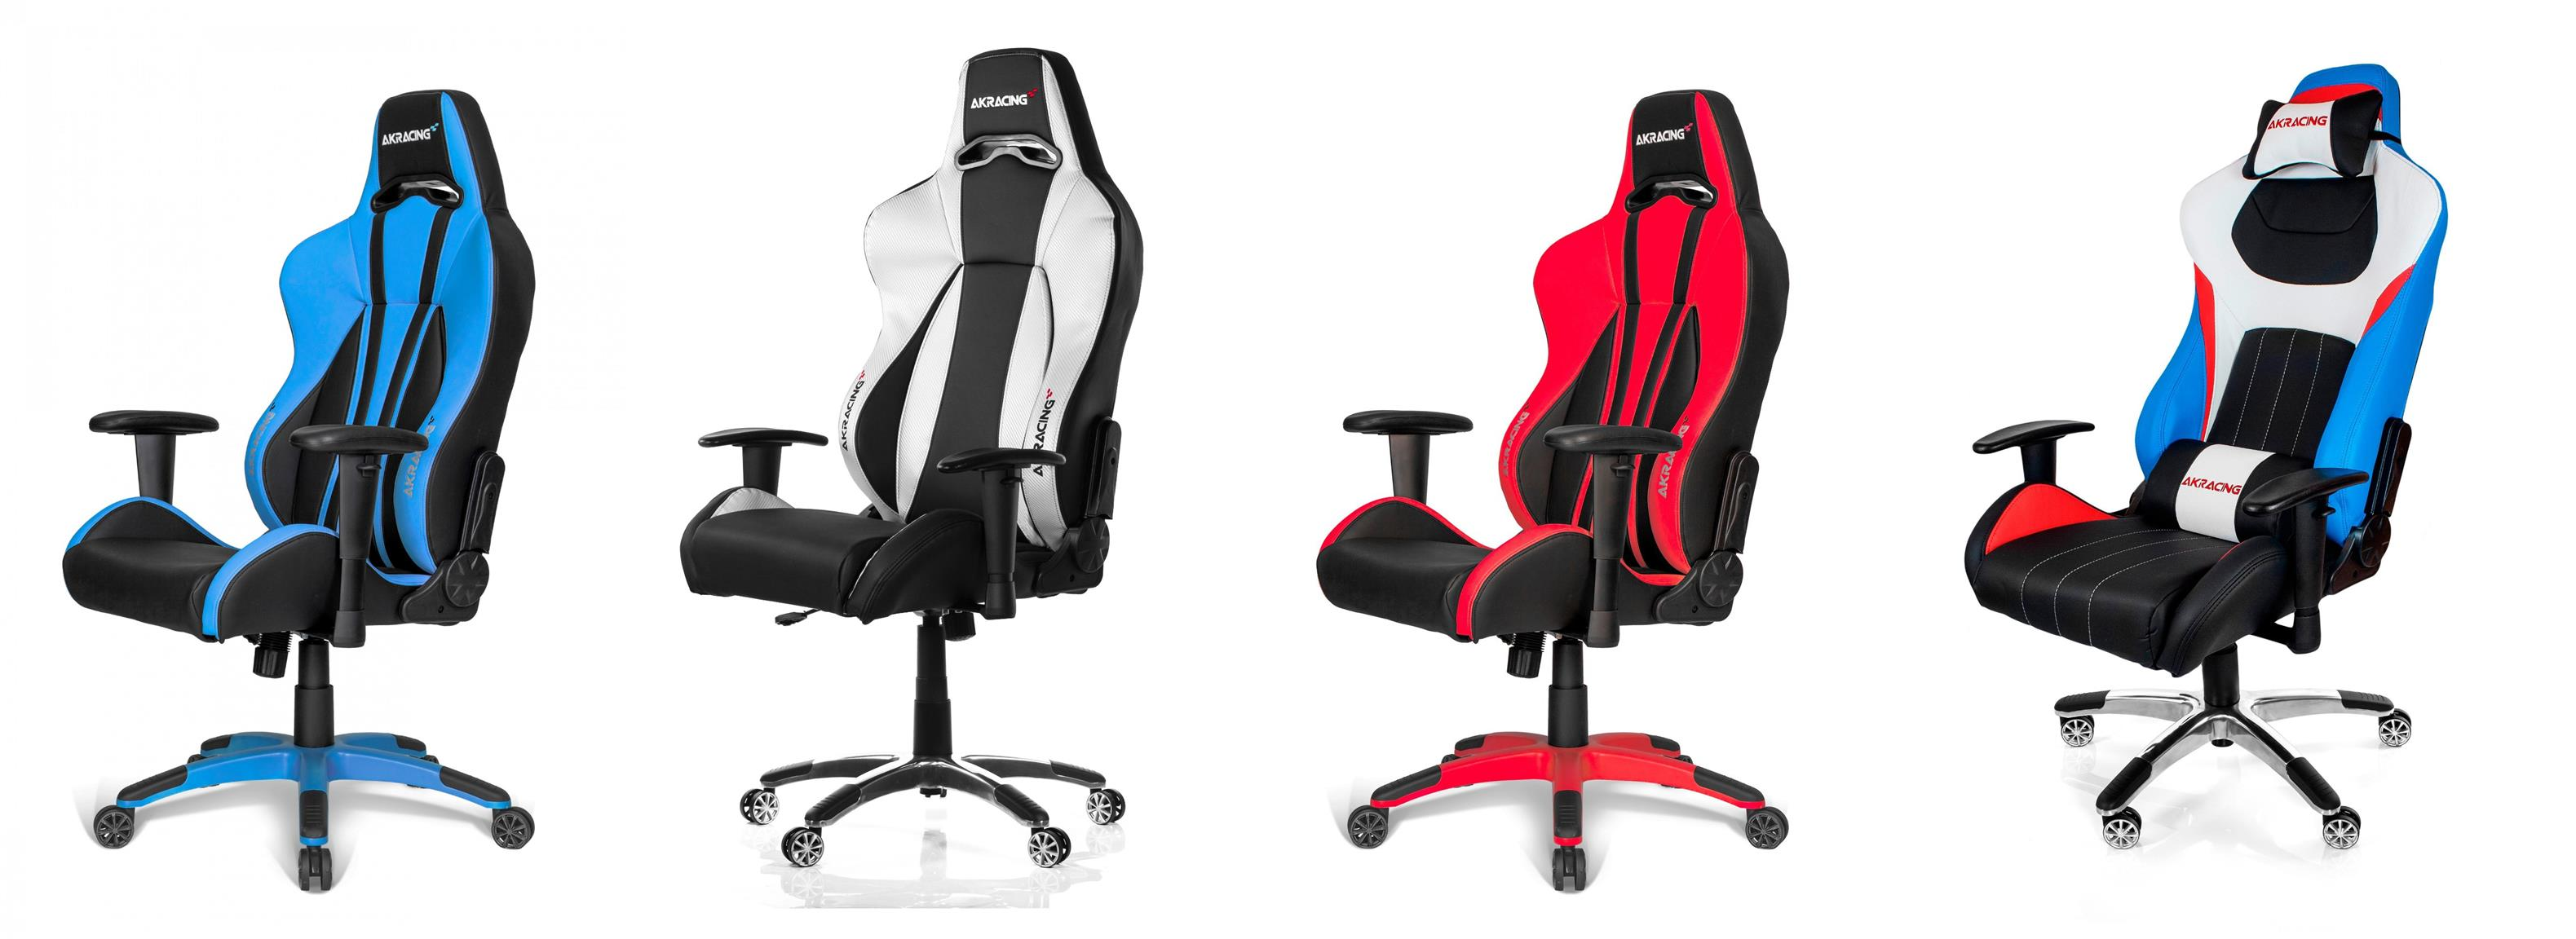 AKRacing Premium Plus Series Gaming Chair